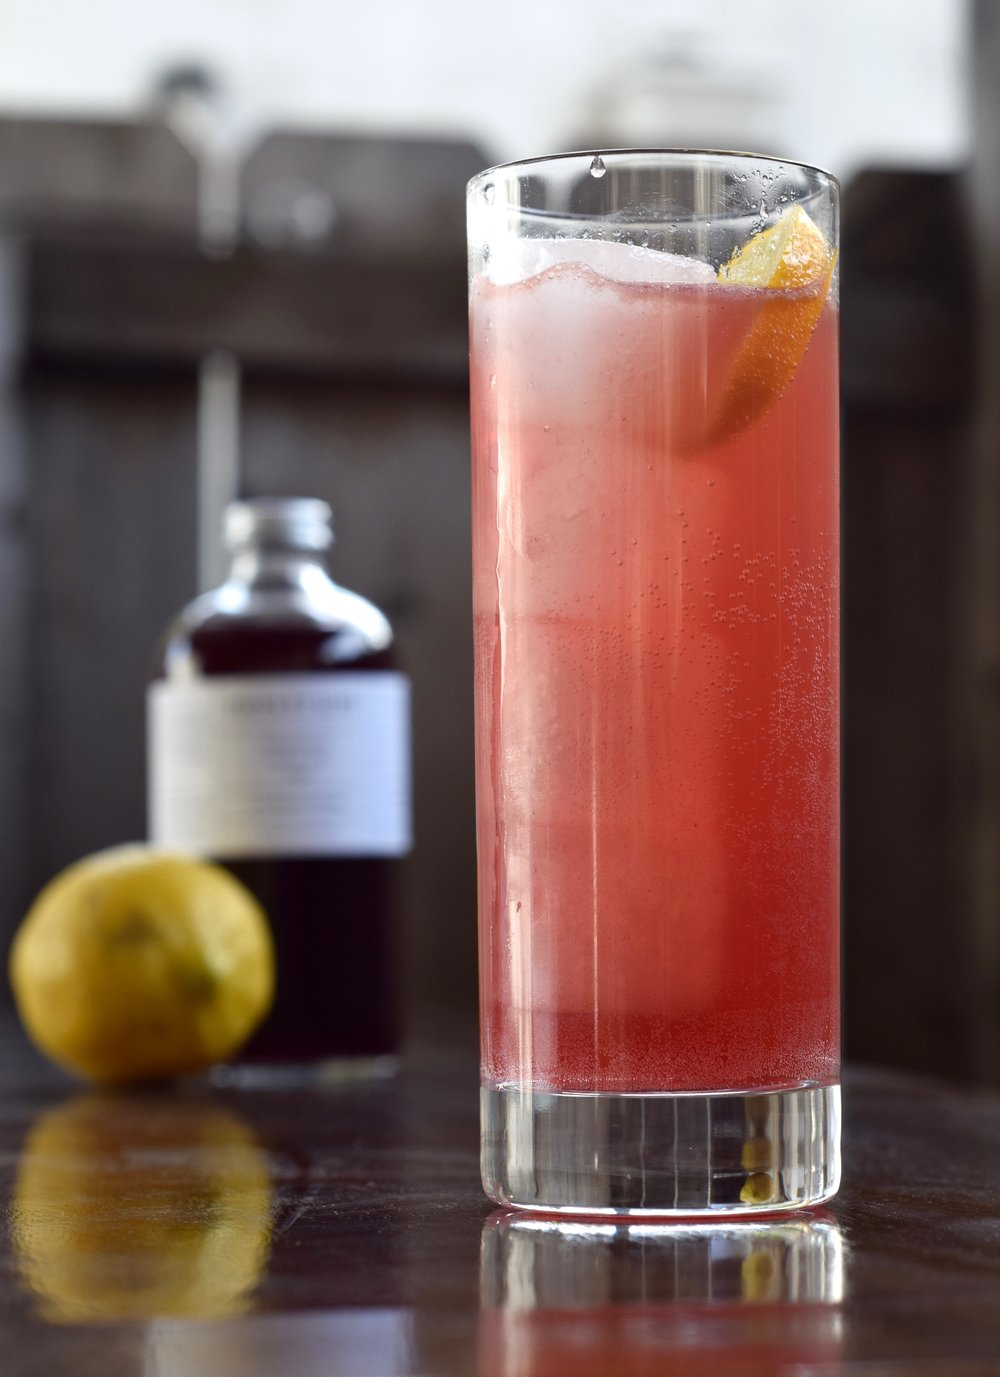 RAINY DAY SCHEDULE - 1 oz nostrum blackberry cacao nib sage shrub1 oz fresh lemon juice1 oz fresh orange juiceginger beerdirections: build in a tall glass filled with ice.